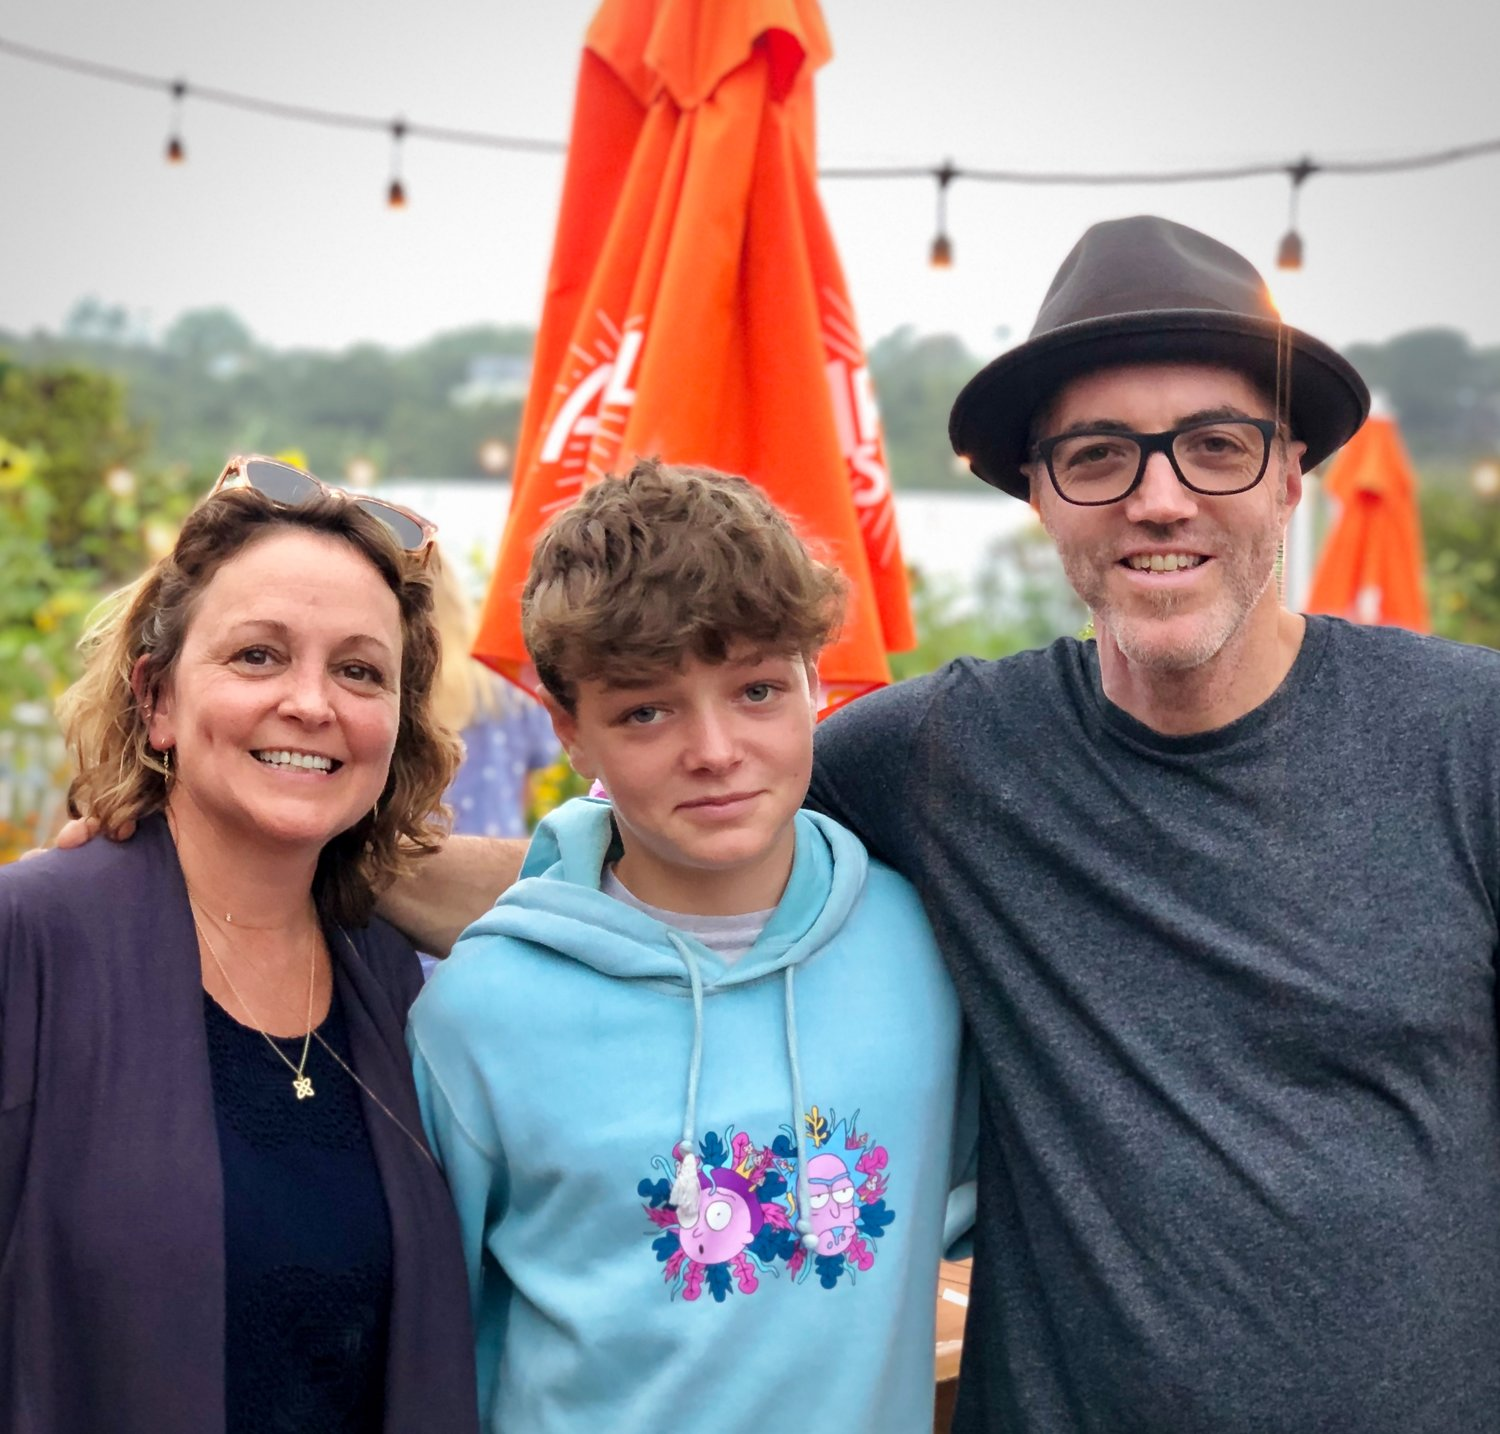 Kathleen DiResta and Dan Roth have been married for over 20 years and have become integral parts of Sea Cliff, where they have raised their 14-year-old son Dylan.